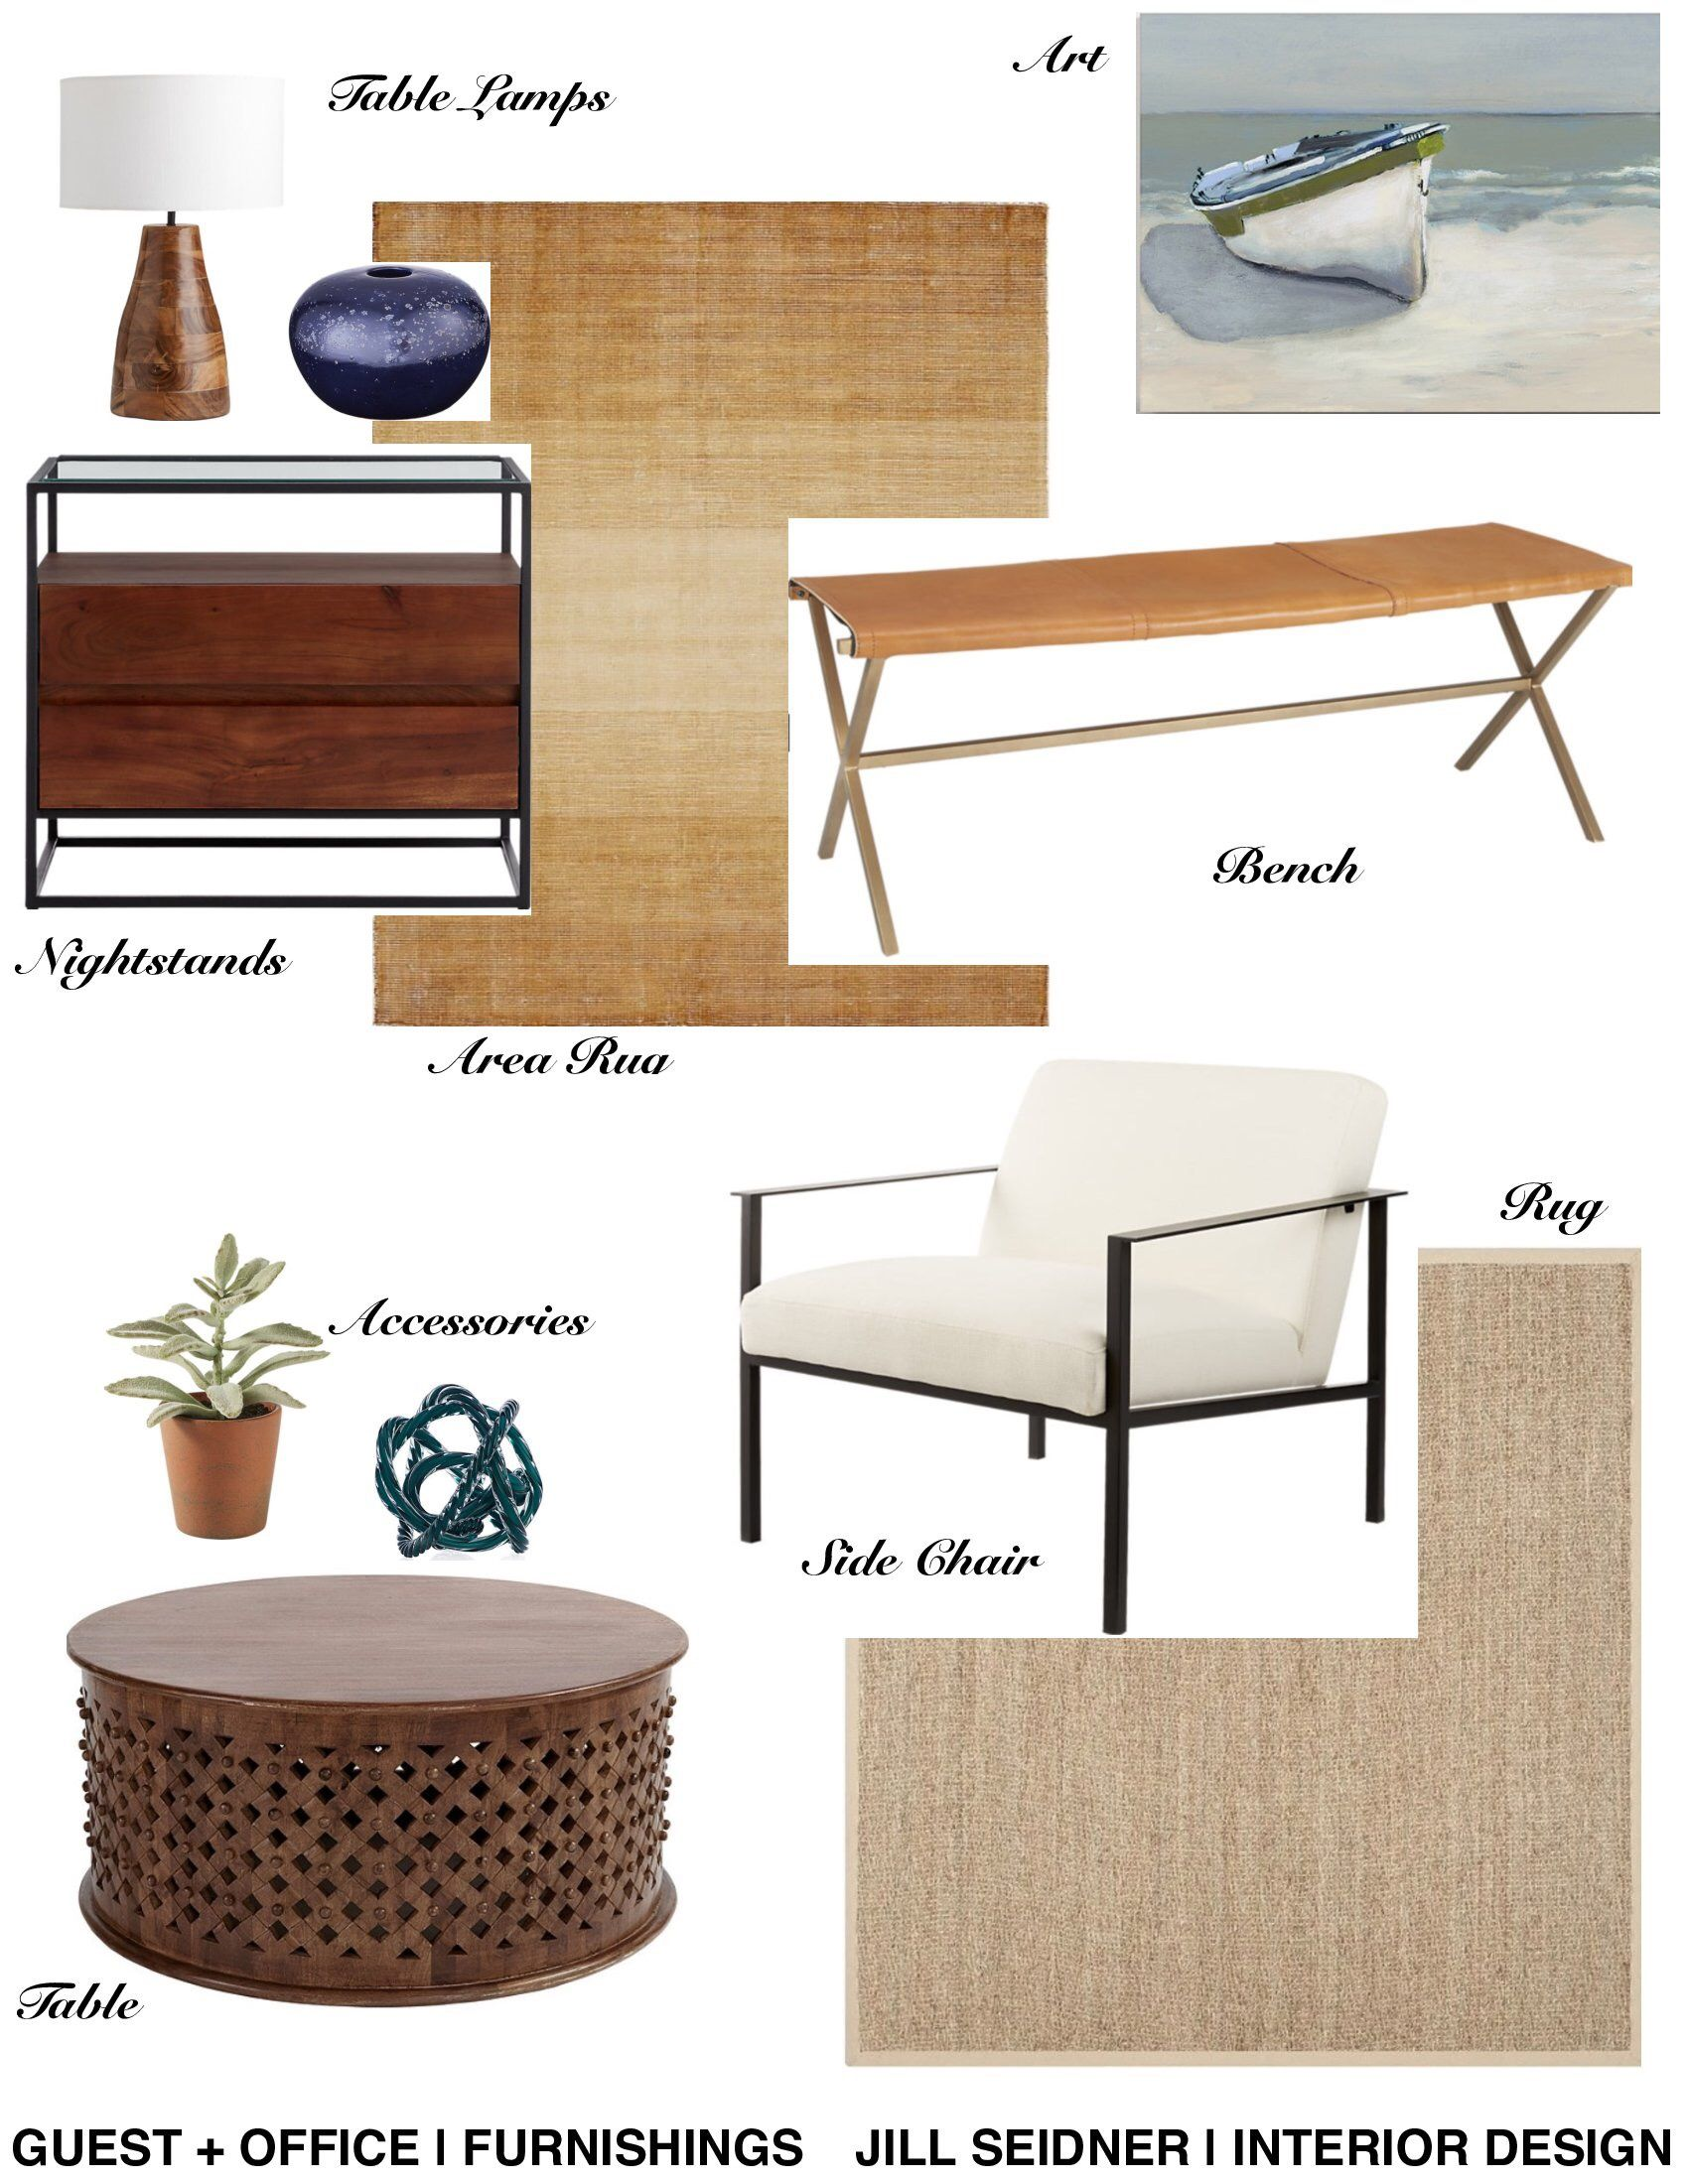 Pacific Palisades, CA Residence Guest + Office Furnishings Concept Board.  #InteriorDesign #Office